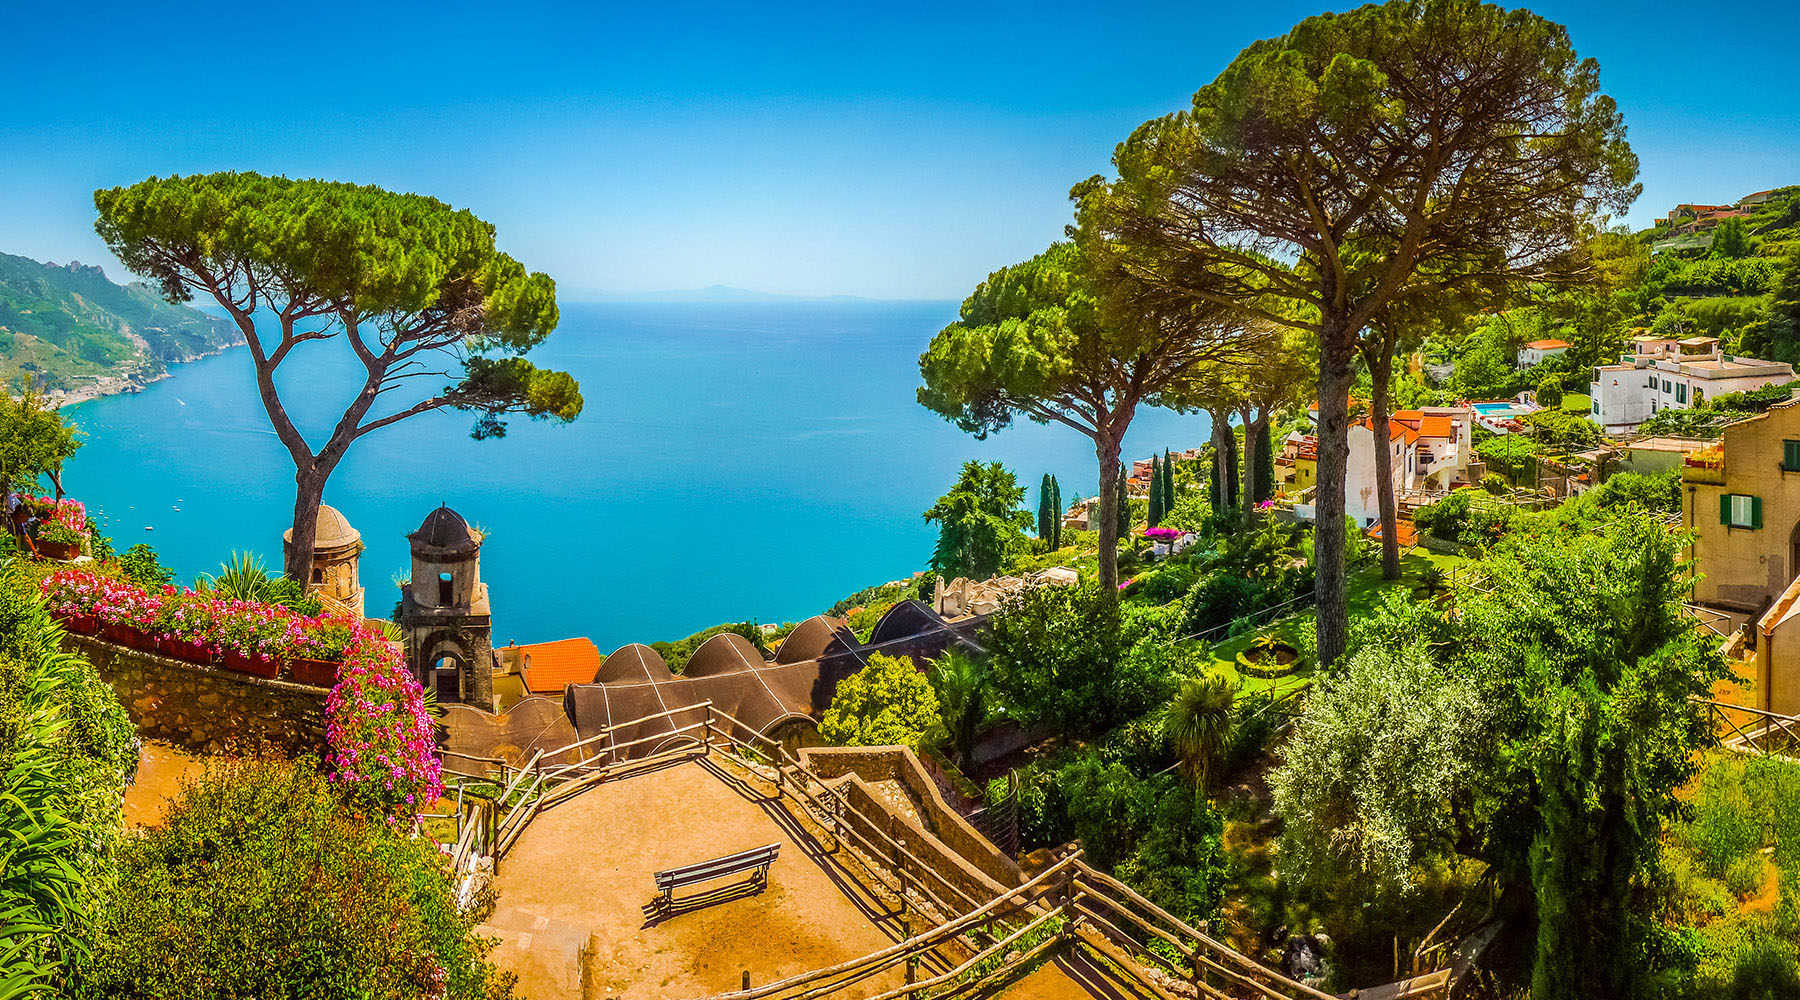 10-Night Amalfi To Dalmatian Voyage